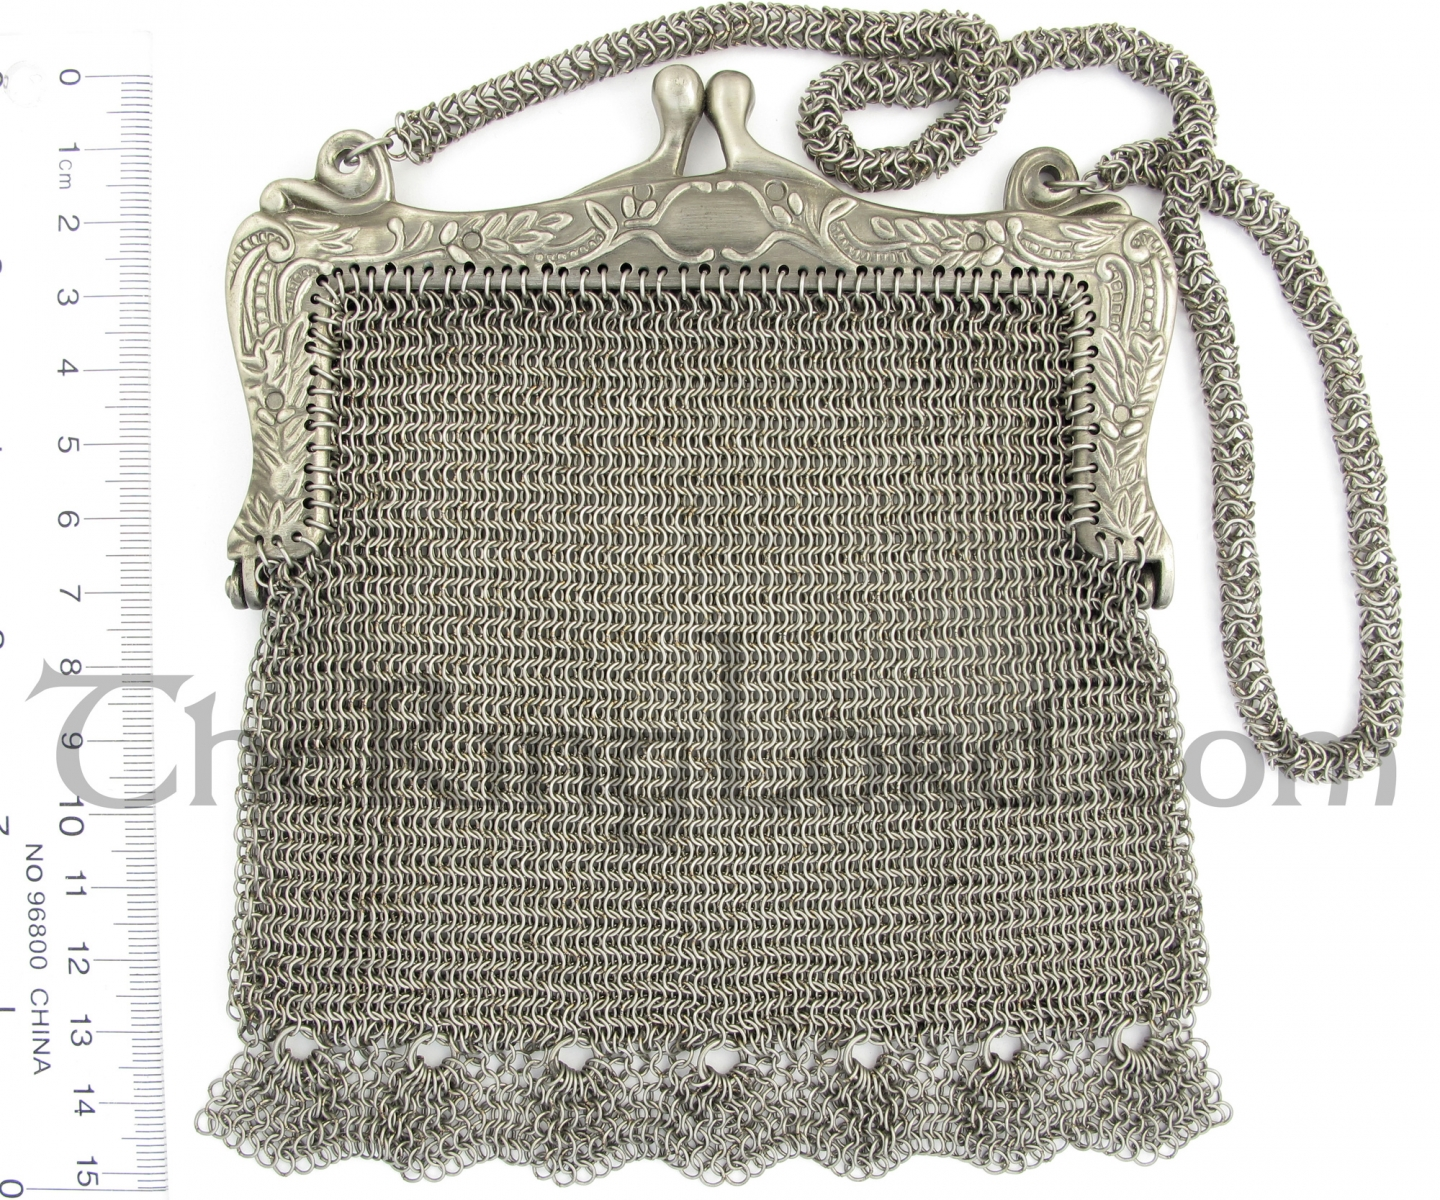 TheRingLord made Stainless Steel Maille Purse